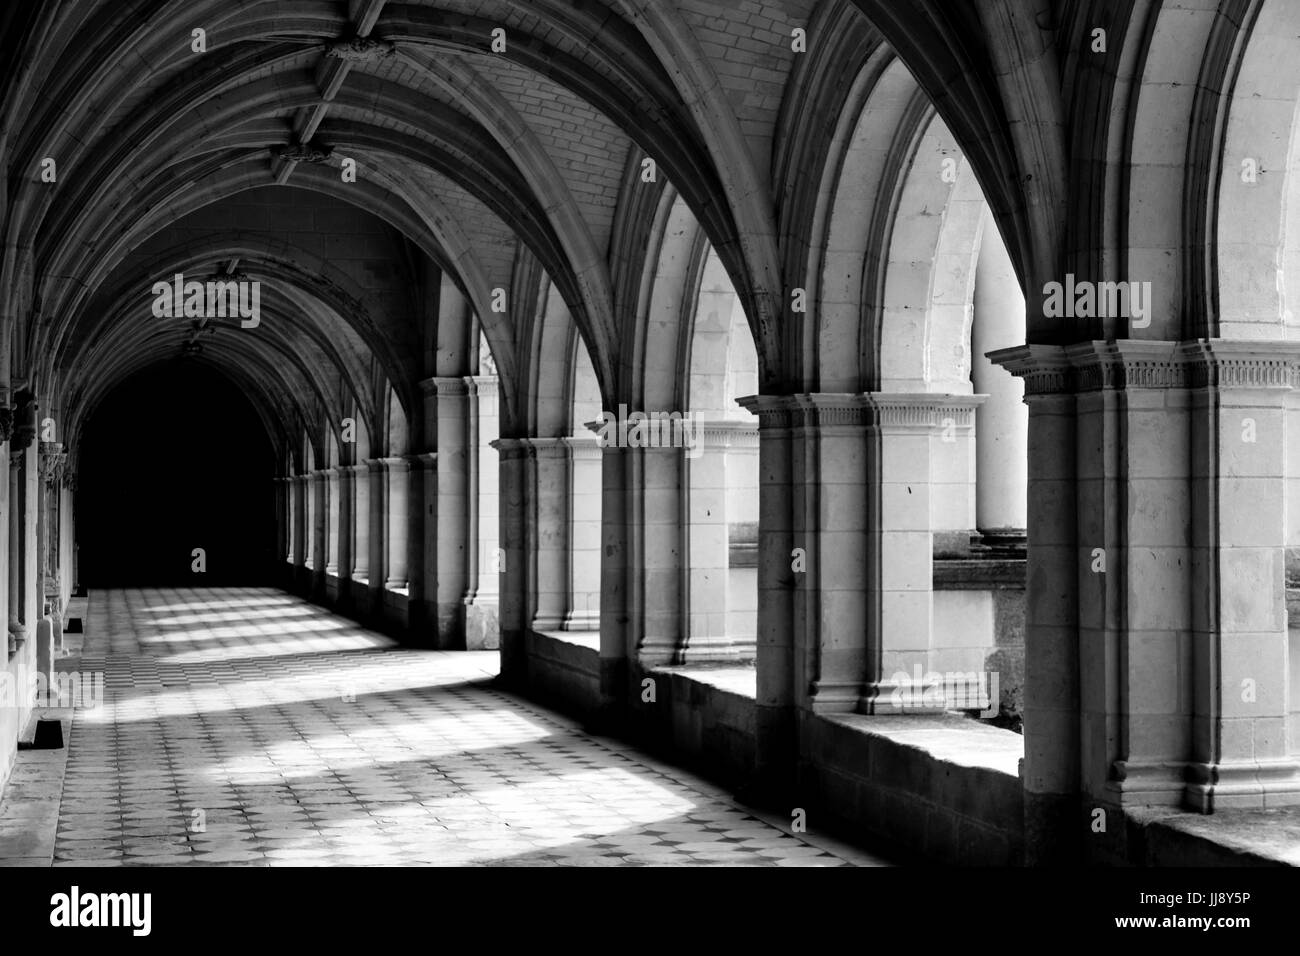 Cloister at, Abbey de Fontevraud, French Abbey, Black and White, high contrast. - Stock Image